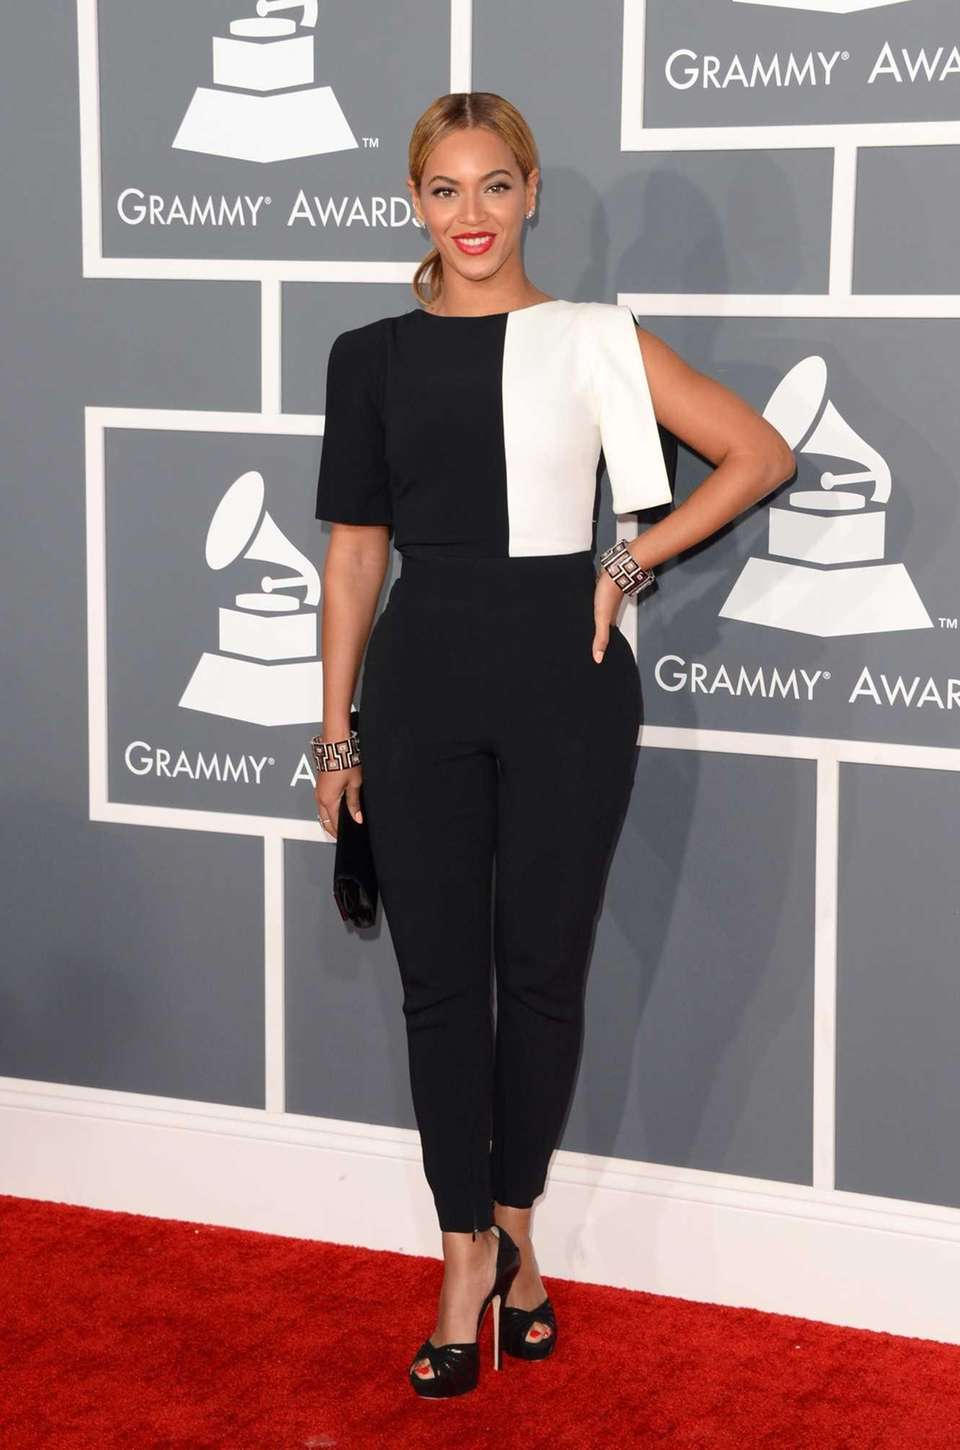 Beyoncé arrives at the 55th annual Grammy Awards